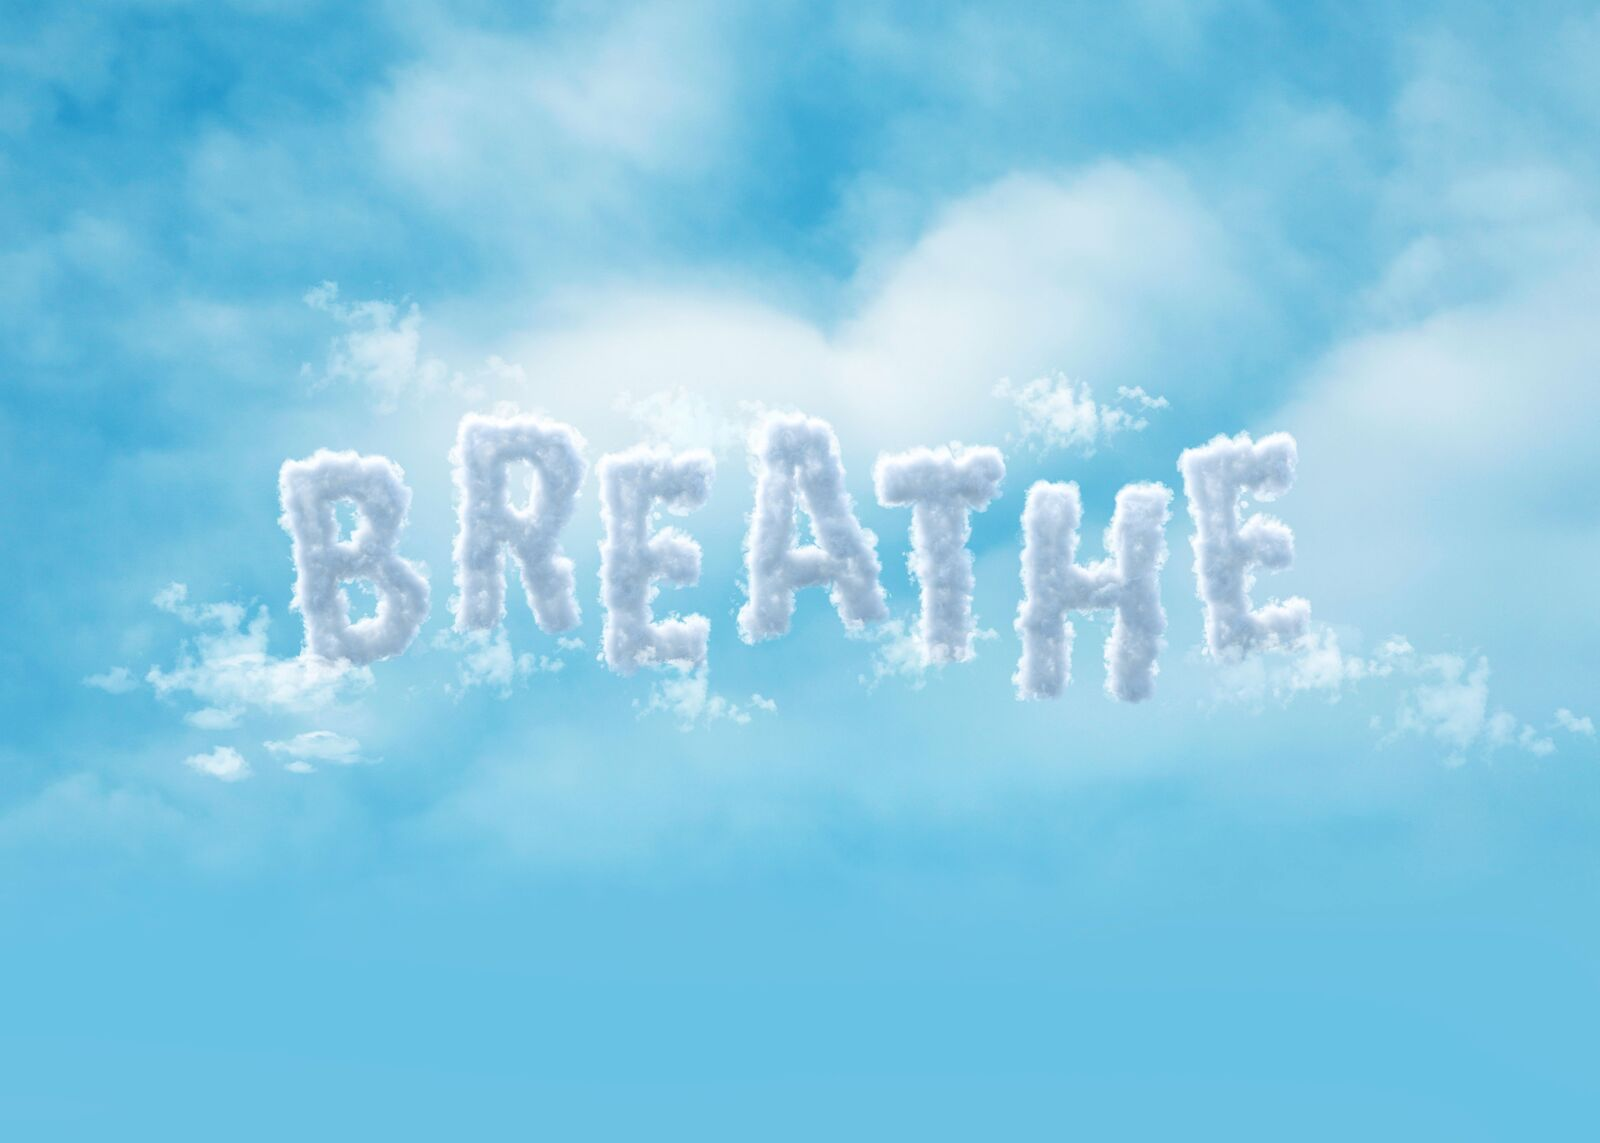 Breathe Creative Clouds Lettering